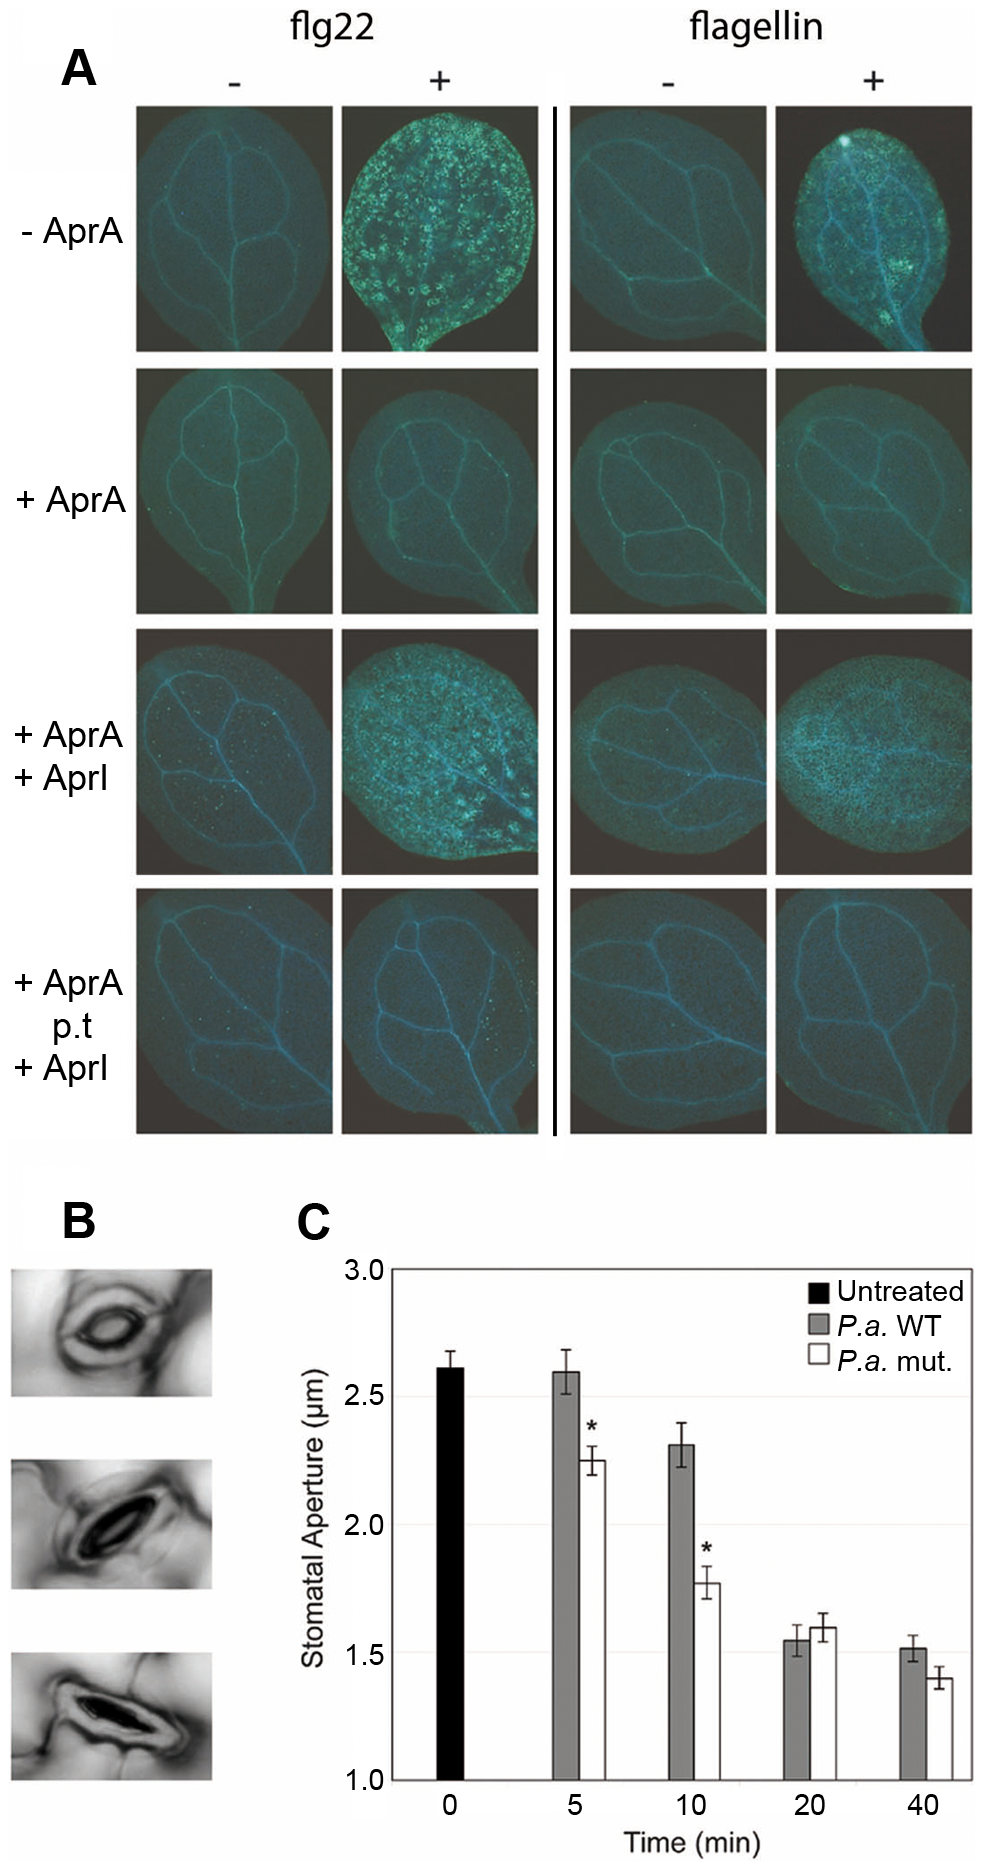 AprA prevents recognition of flagellin in <i>Arabidopsis</i> and prevents stomatal closure.